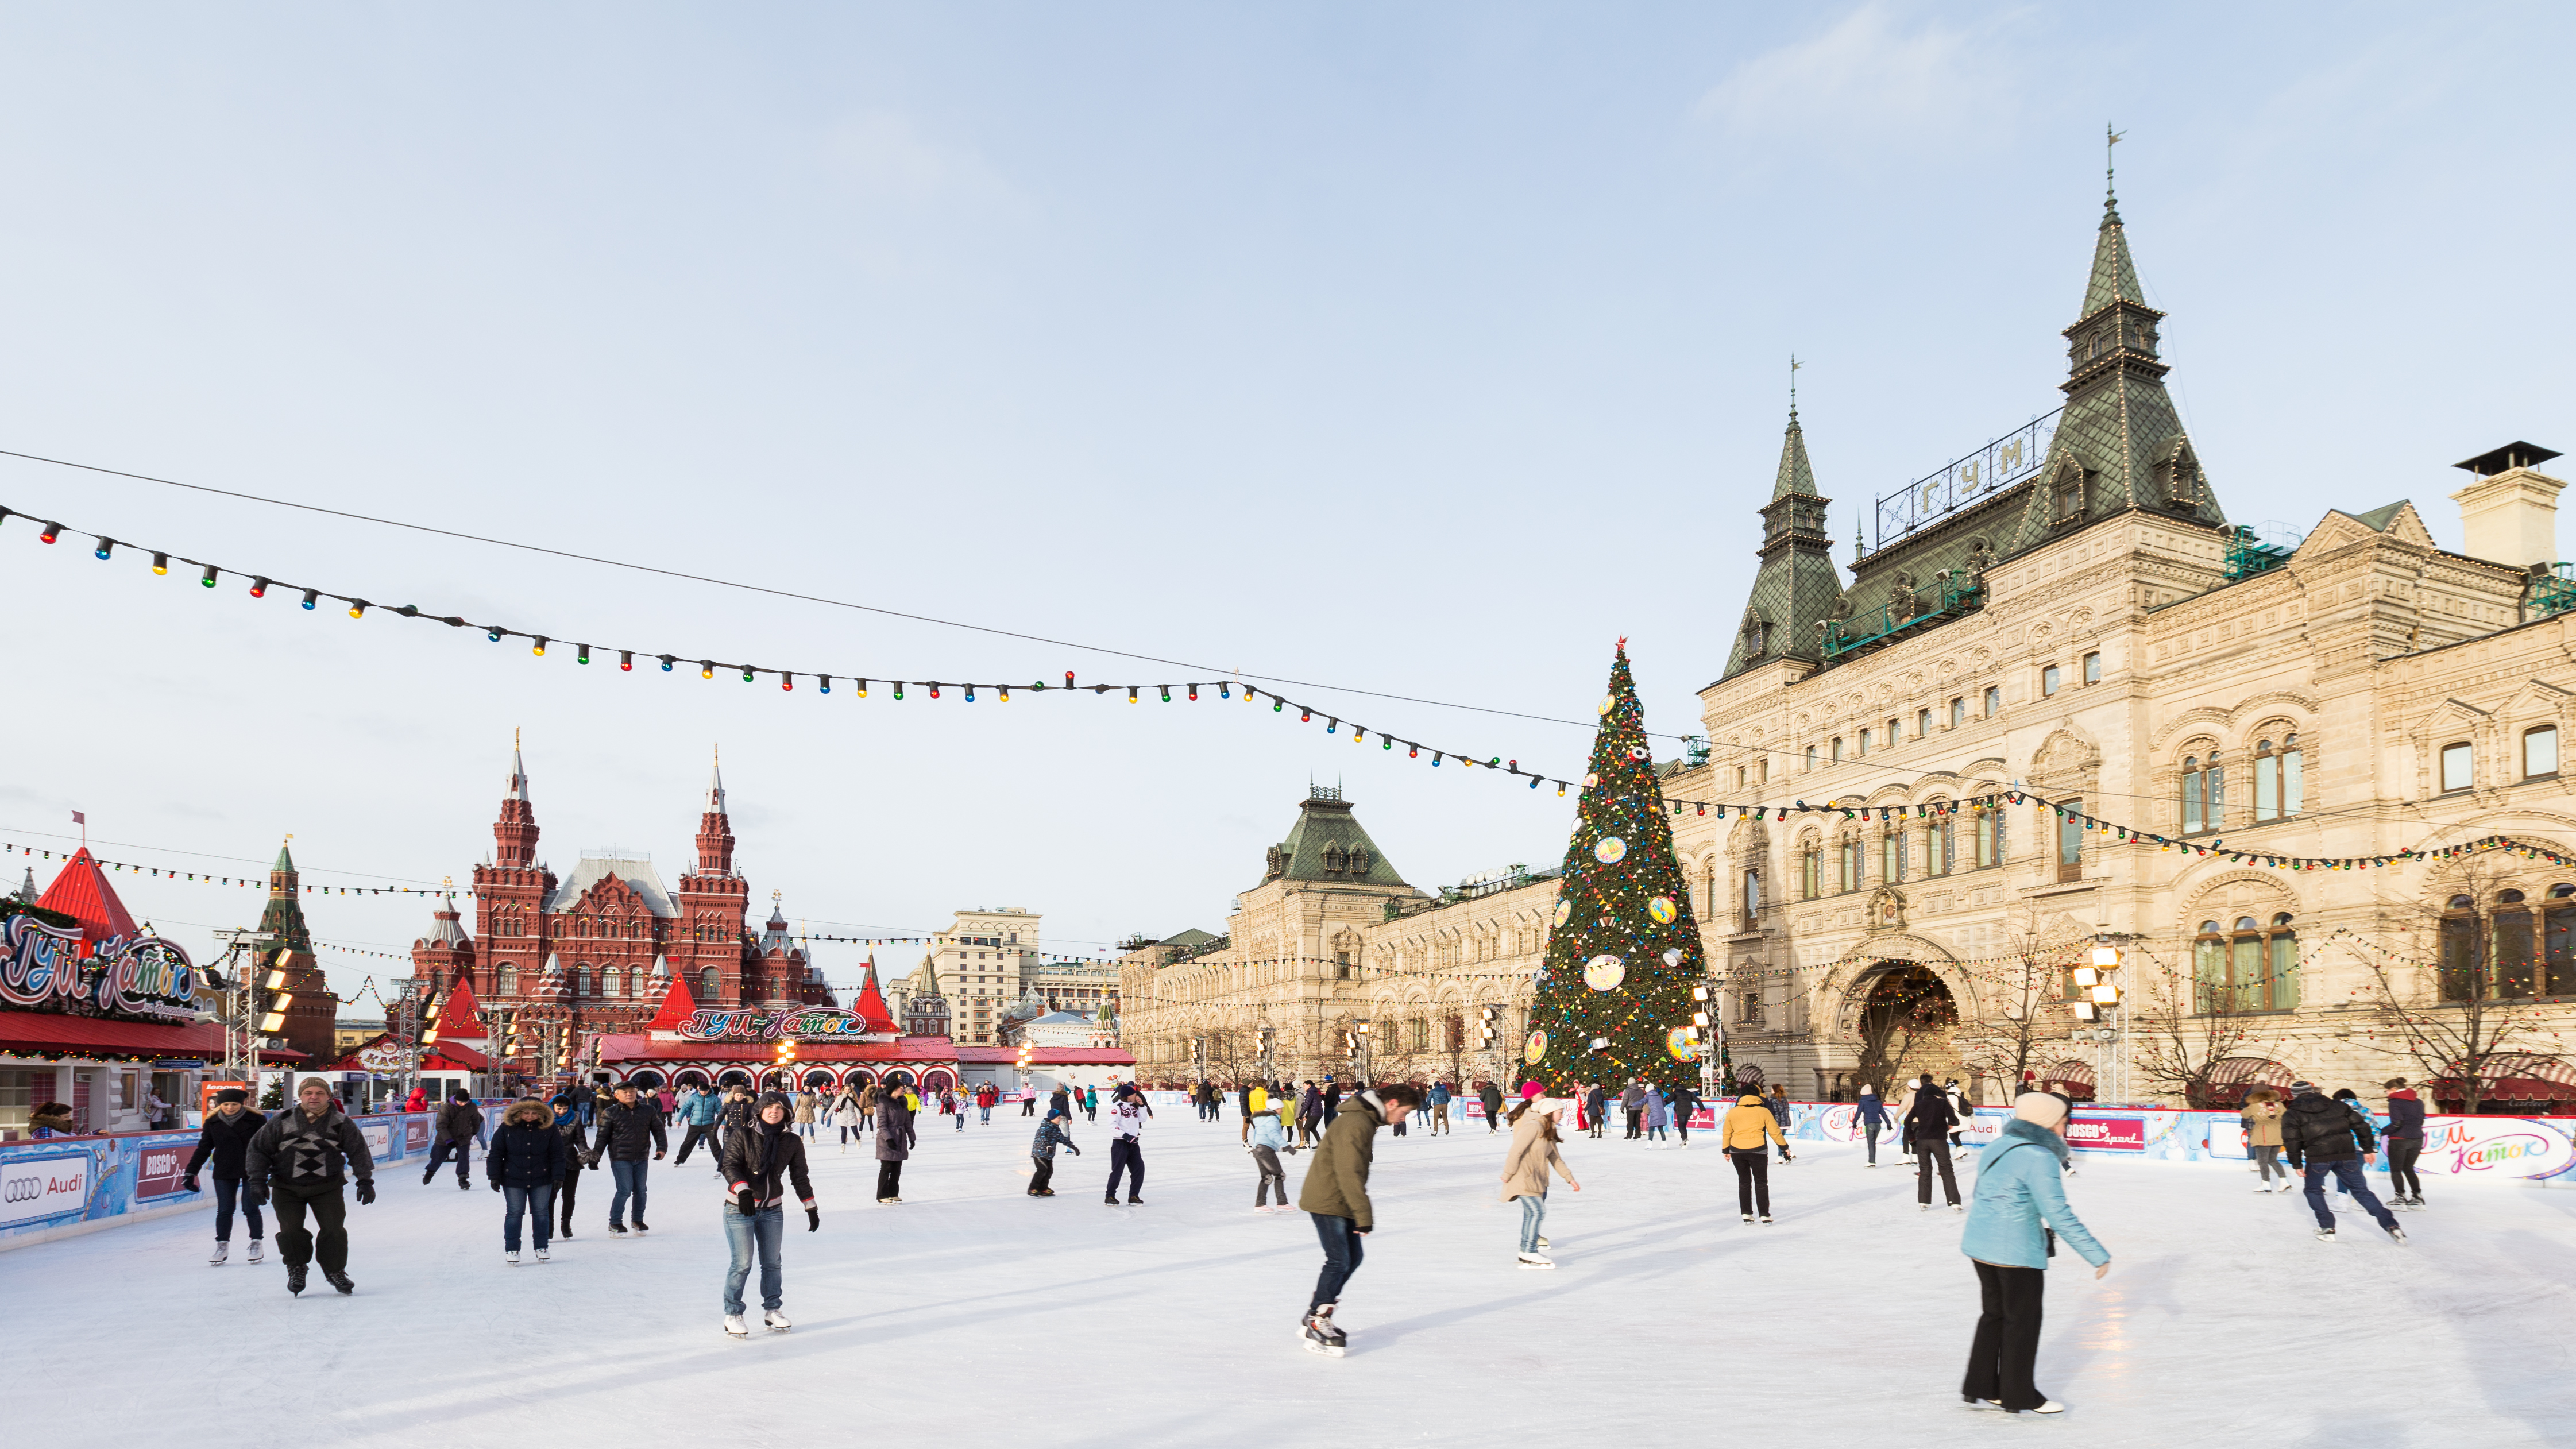 Every winter Red Square hosts ice skating rink.